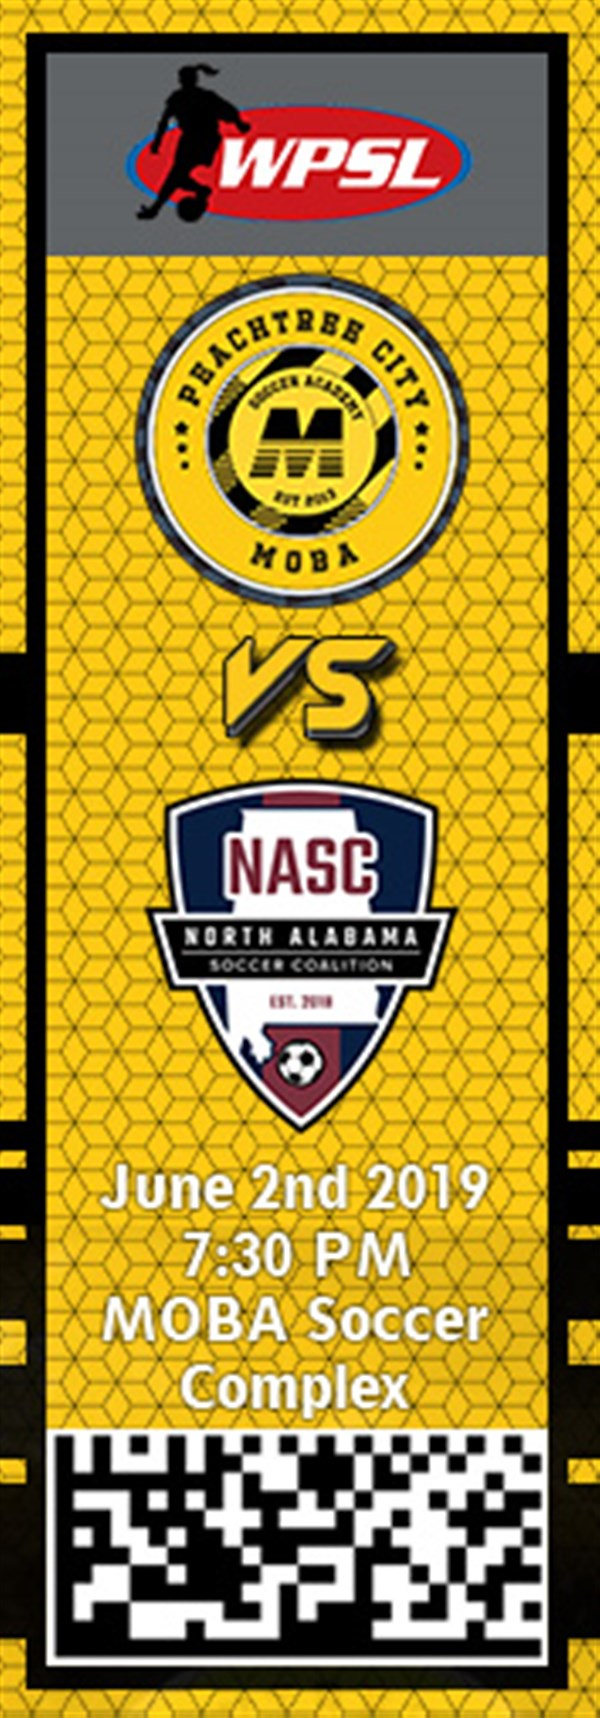 Get Information and buy tickets to PTC MOBA vs. NASC WPSL on MOBA Soccer Academy